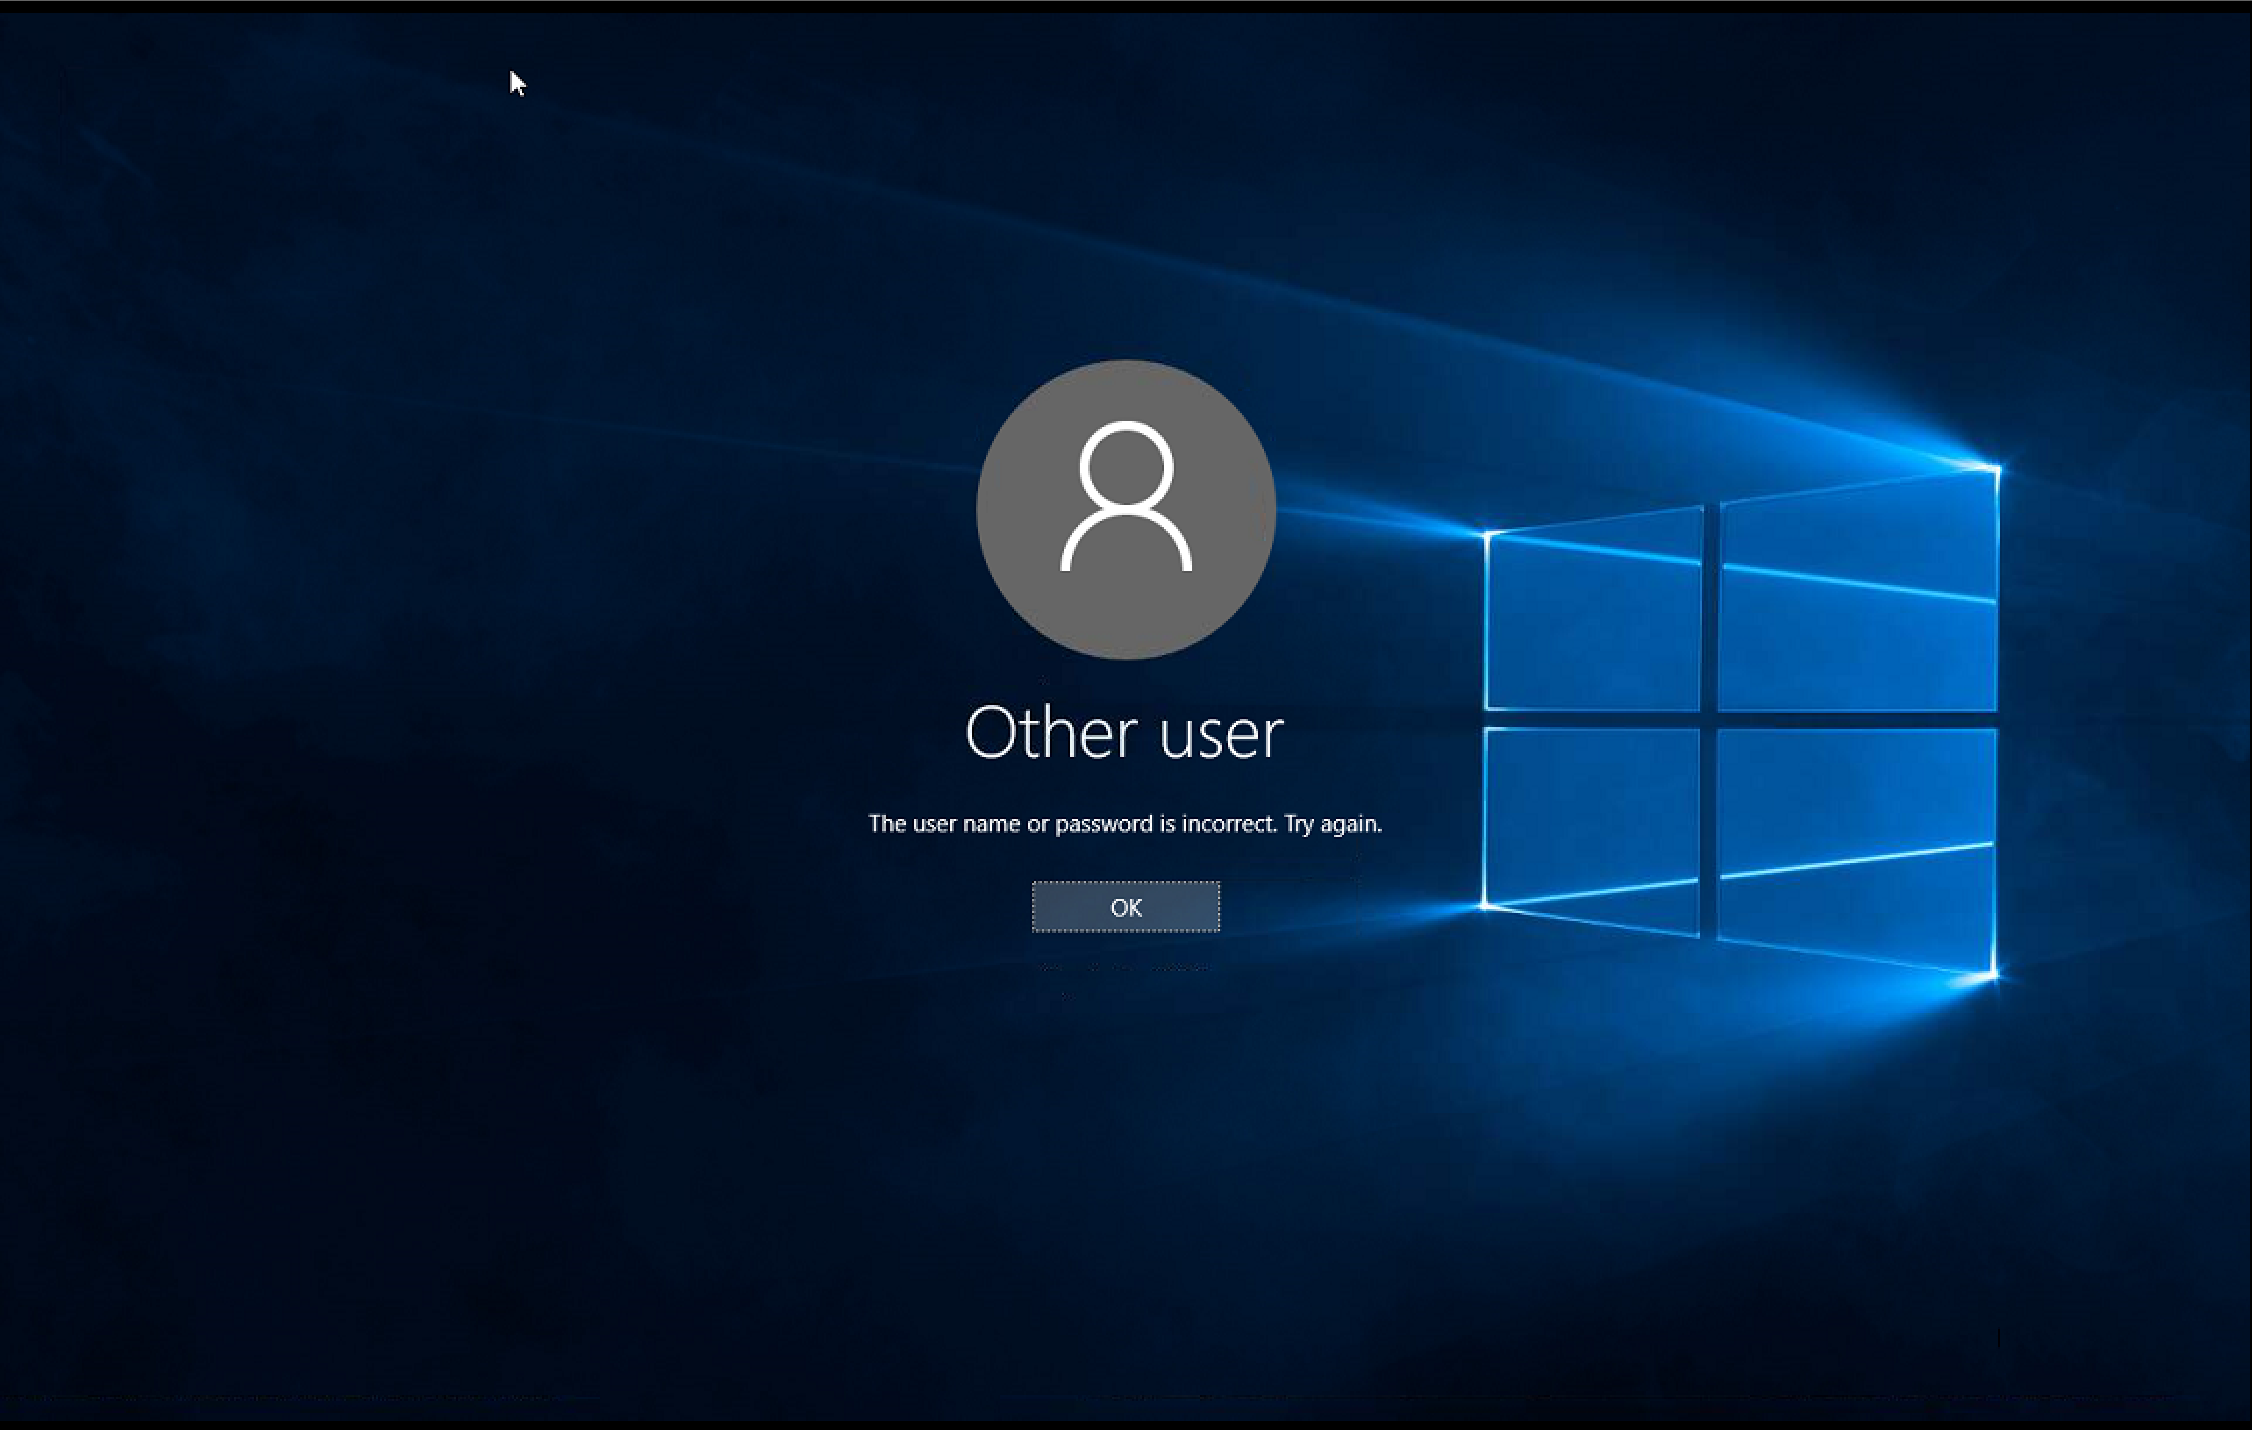 If you see a login screen that says Other User, you've used incorrect credentials.